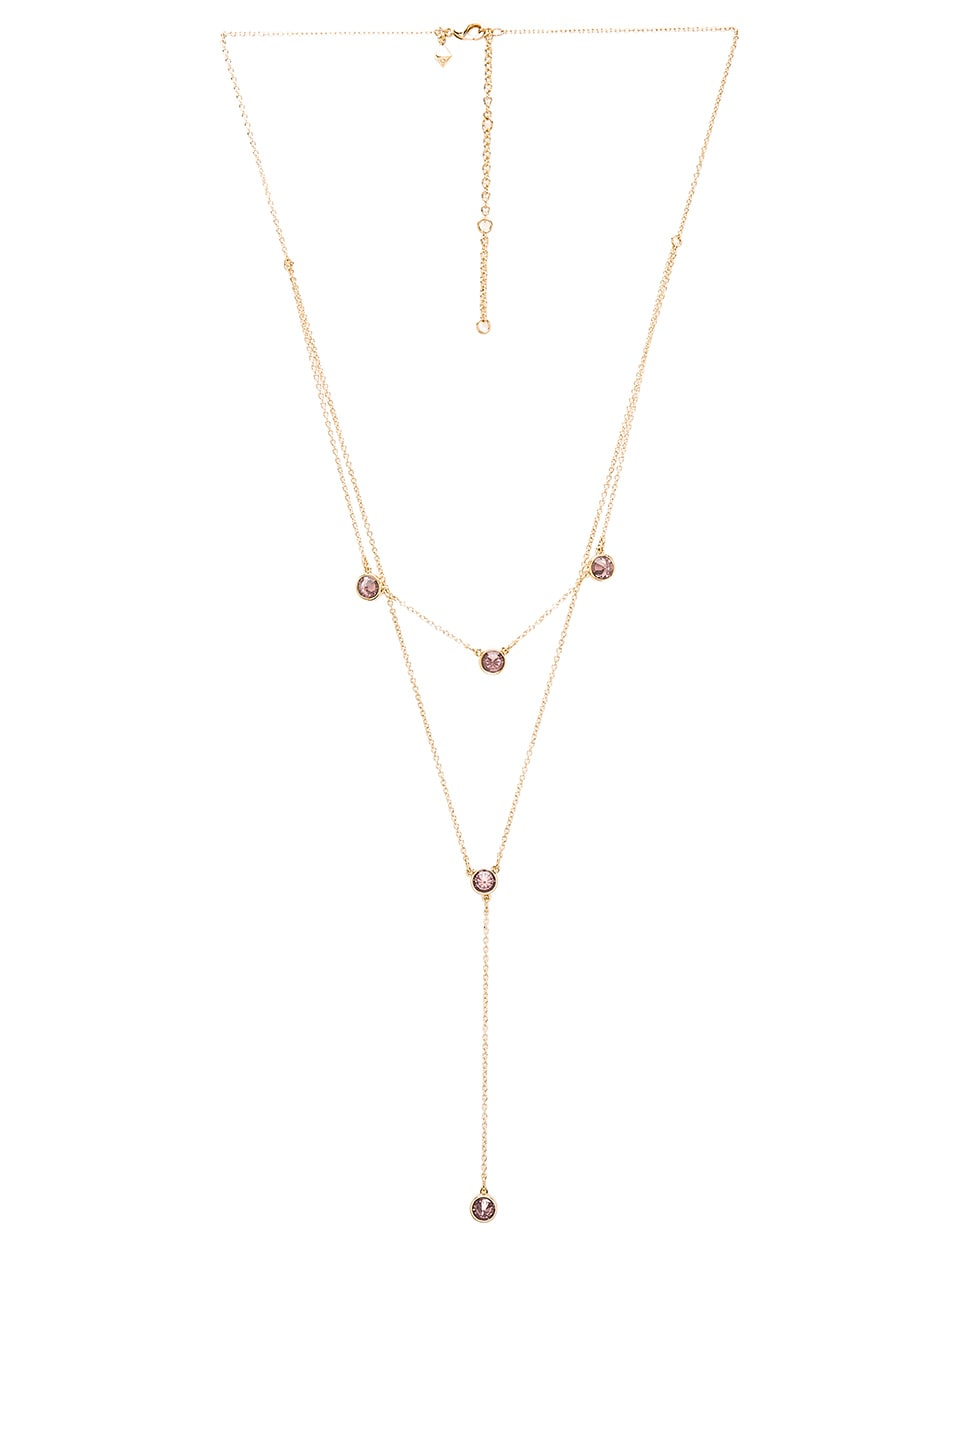 Rebecca Minkoff Gem Stone Two Row Lariat Necklace in Gold & Purple